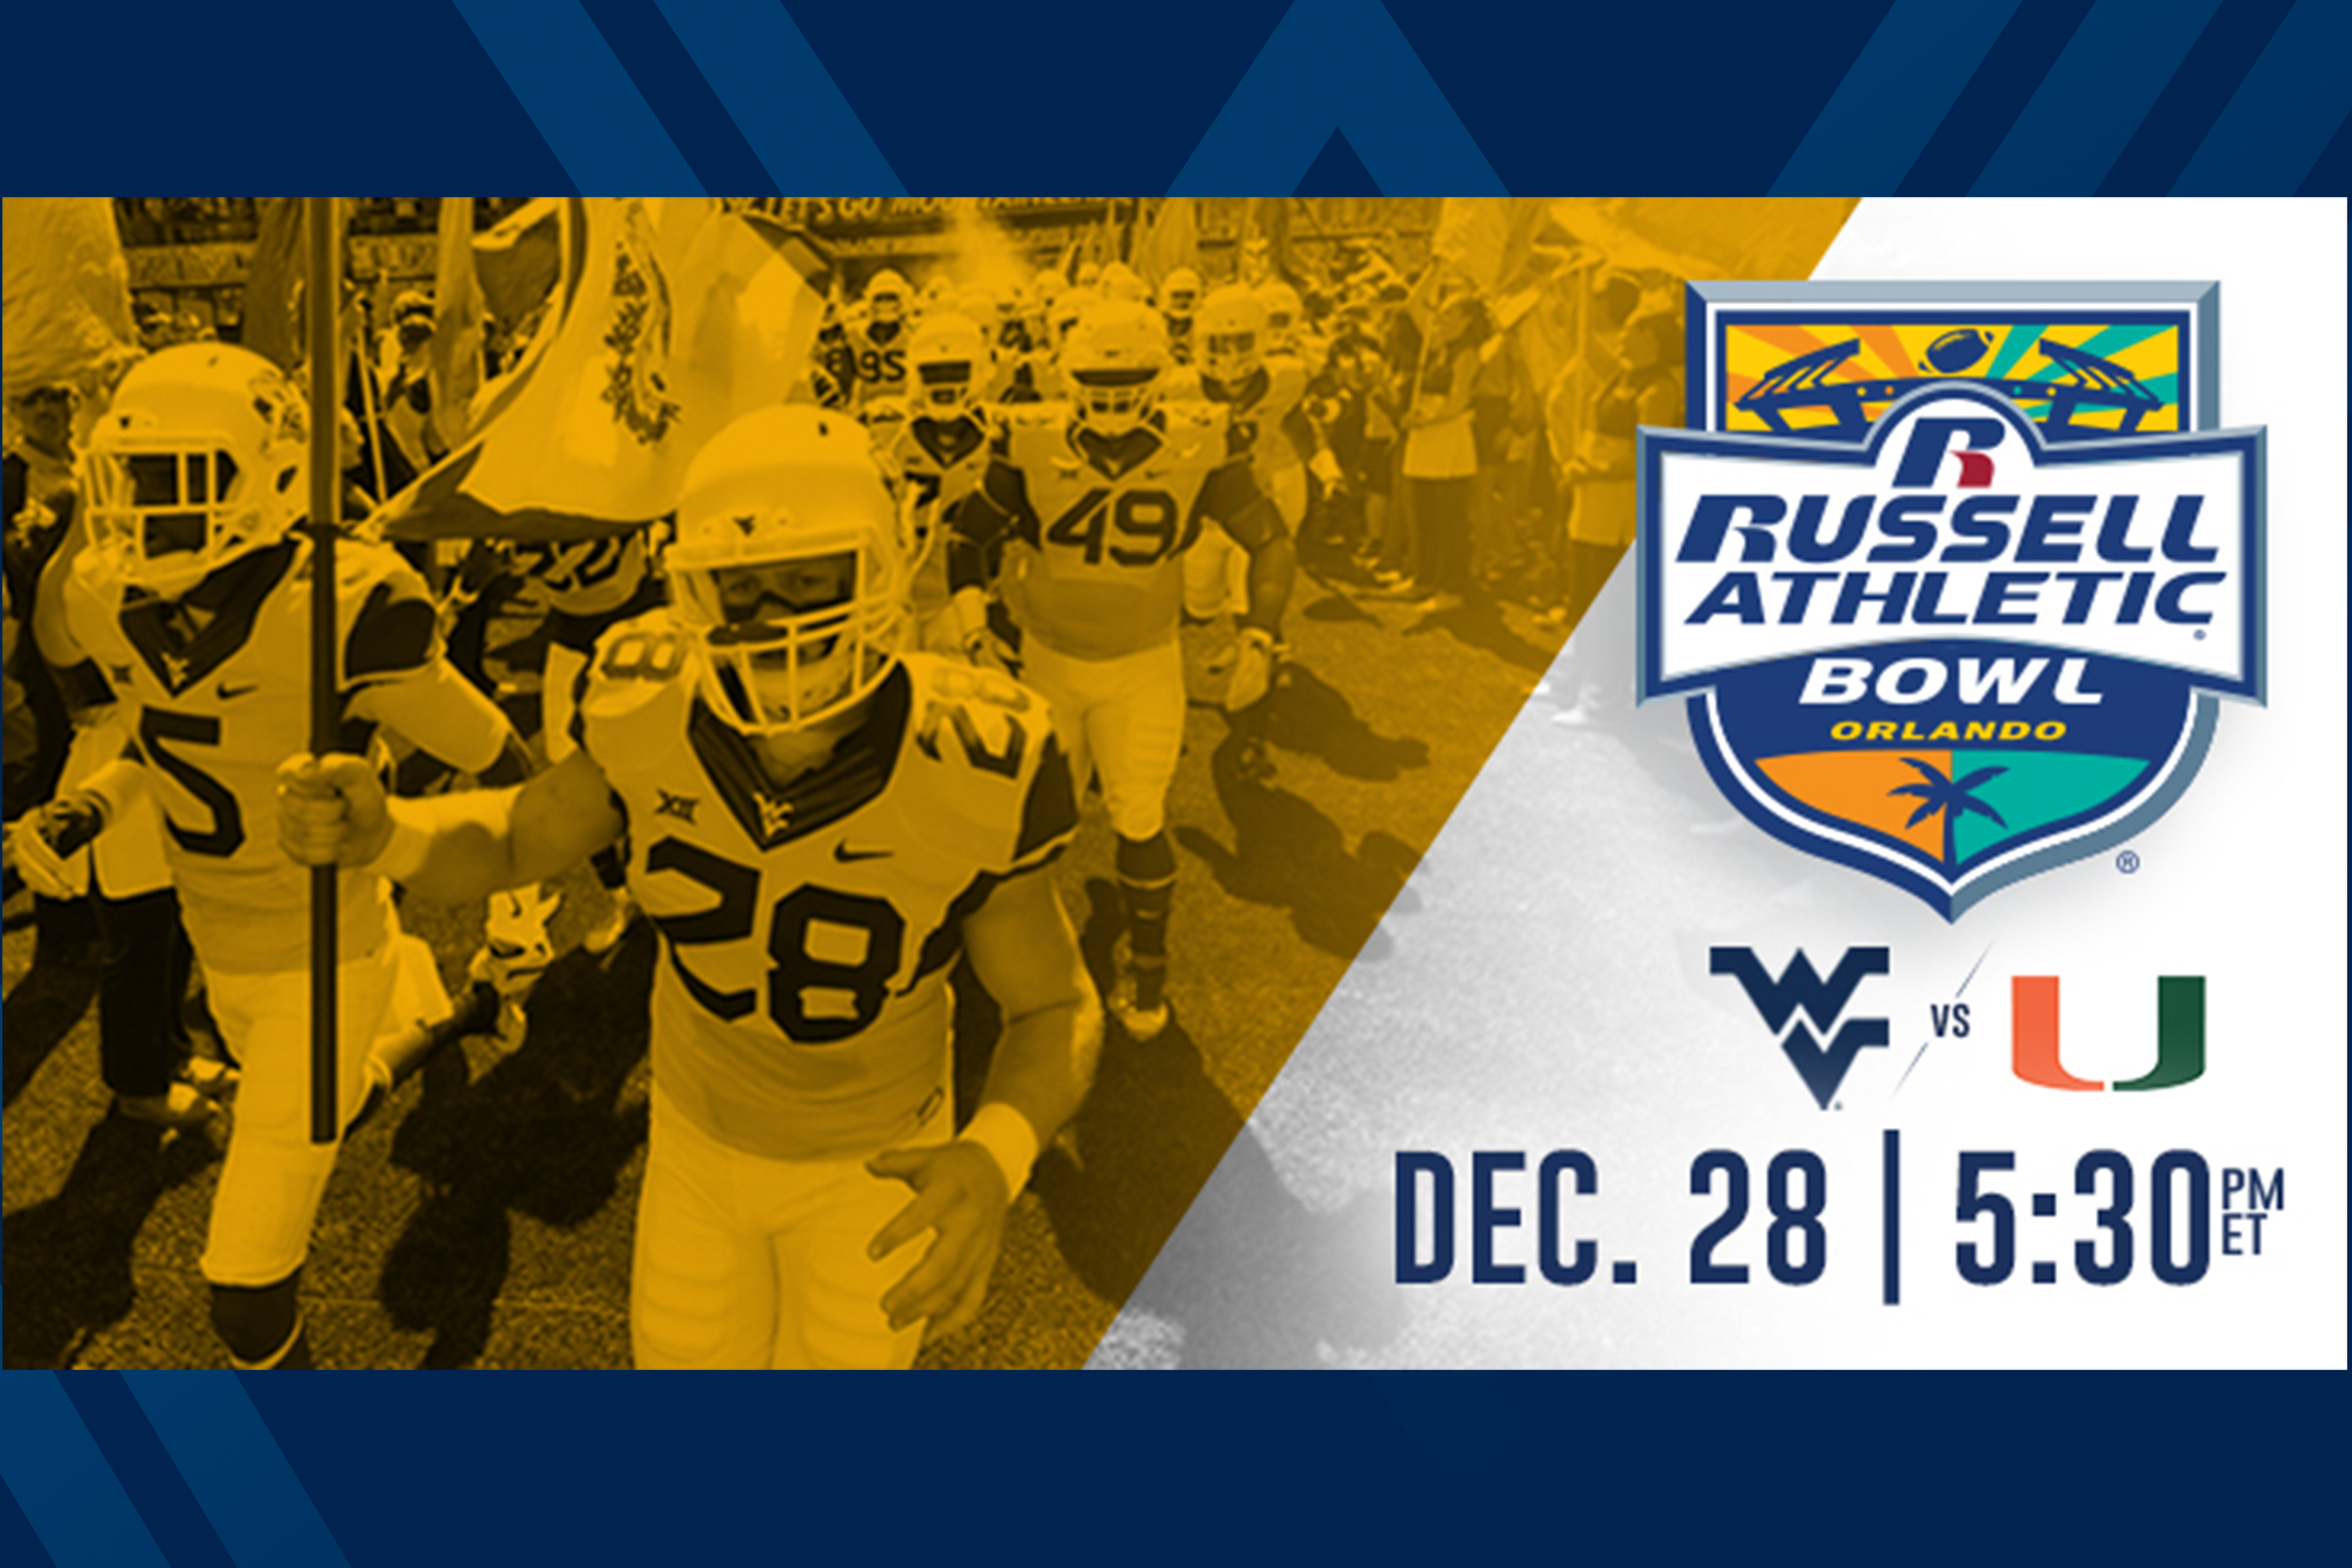 Mountaineer invited to Russell Athletic Bowl fan events in Orlando